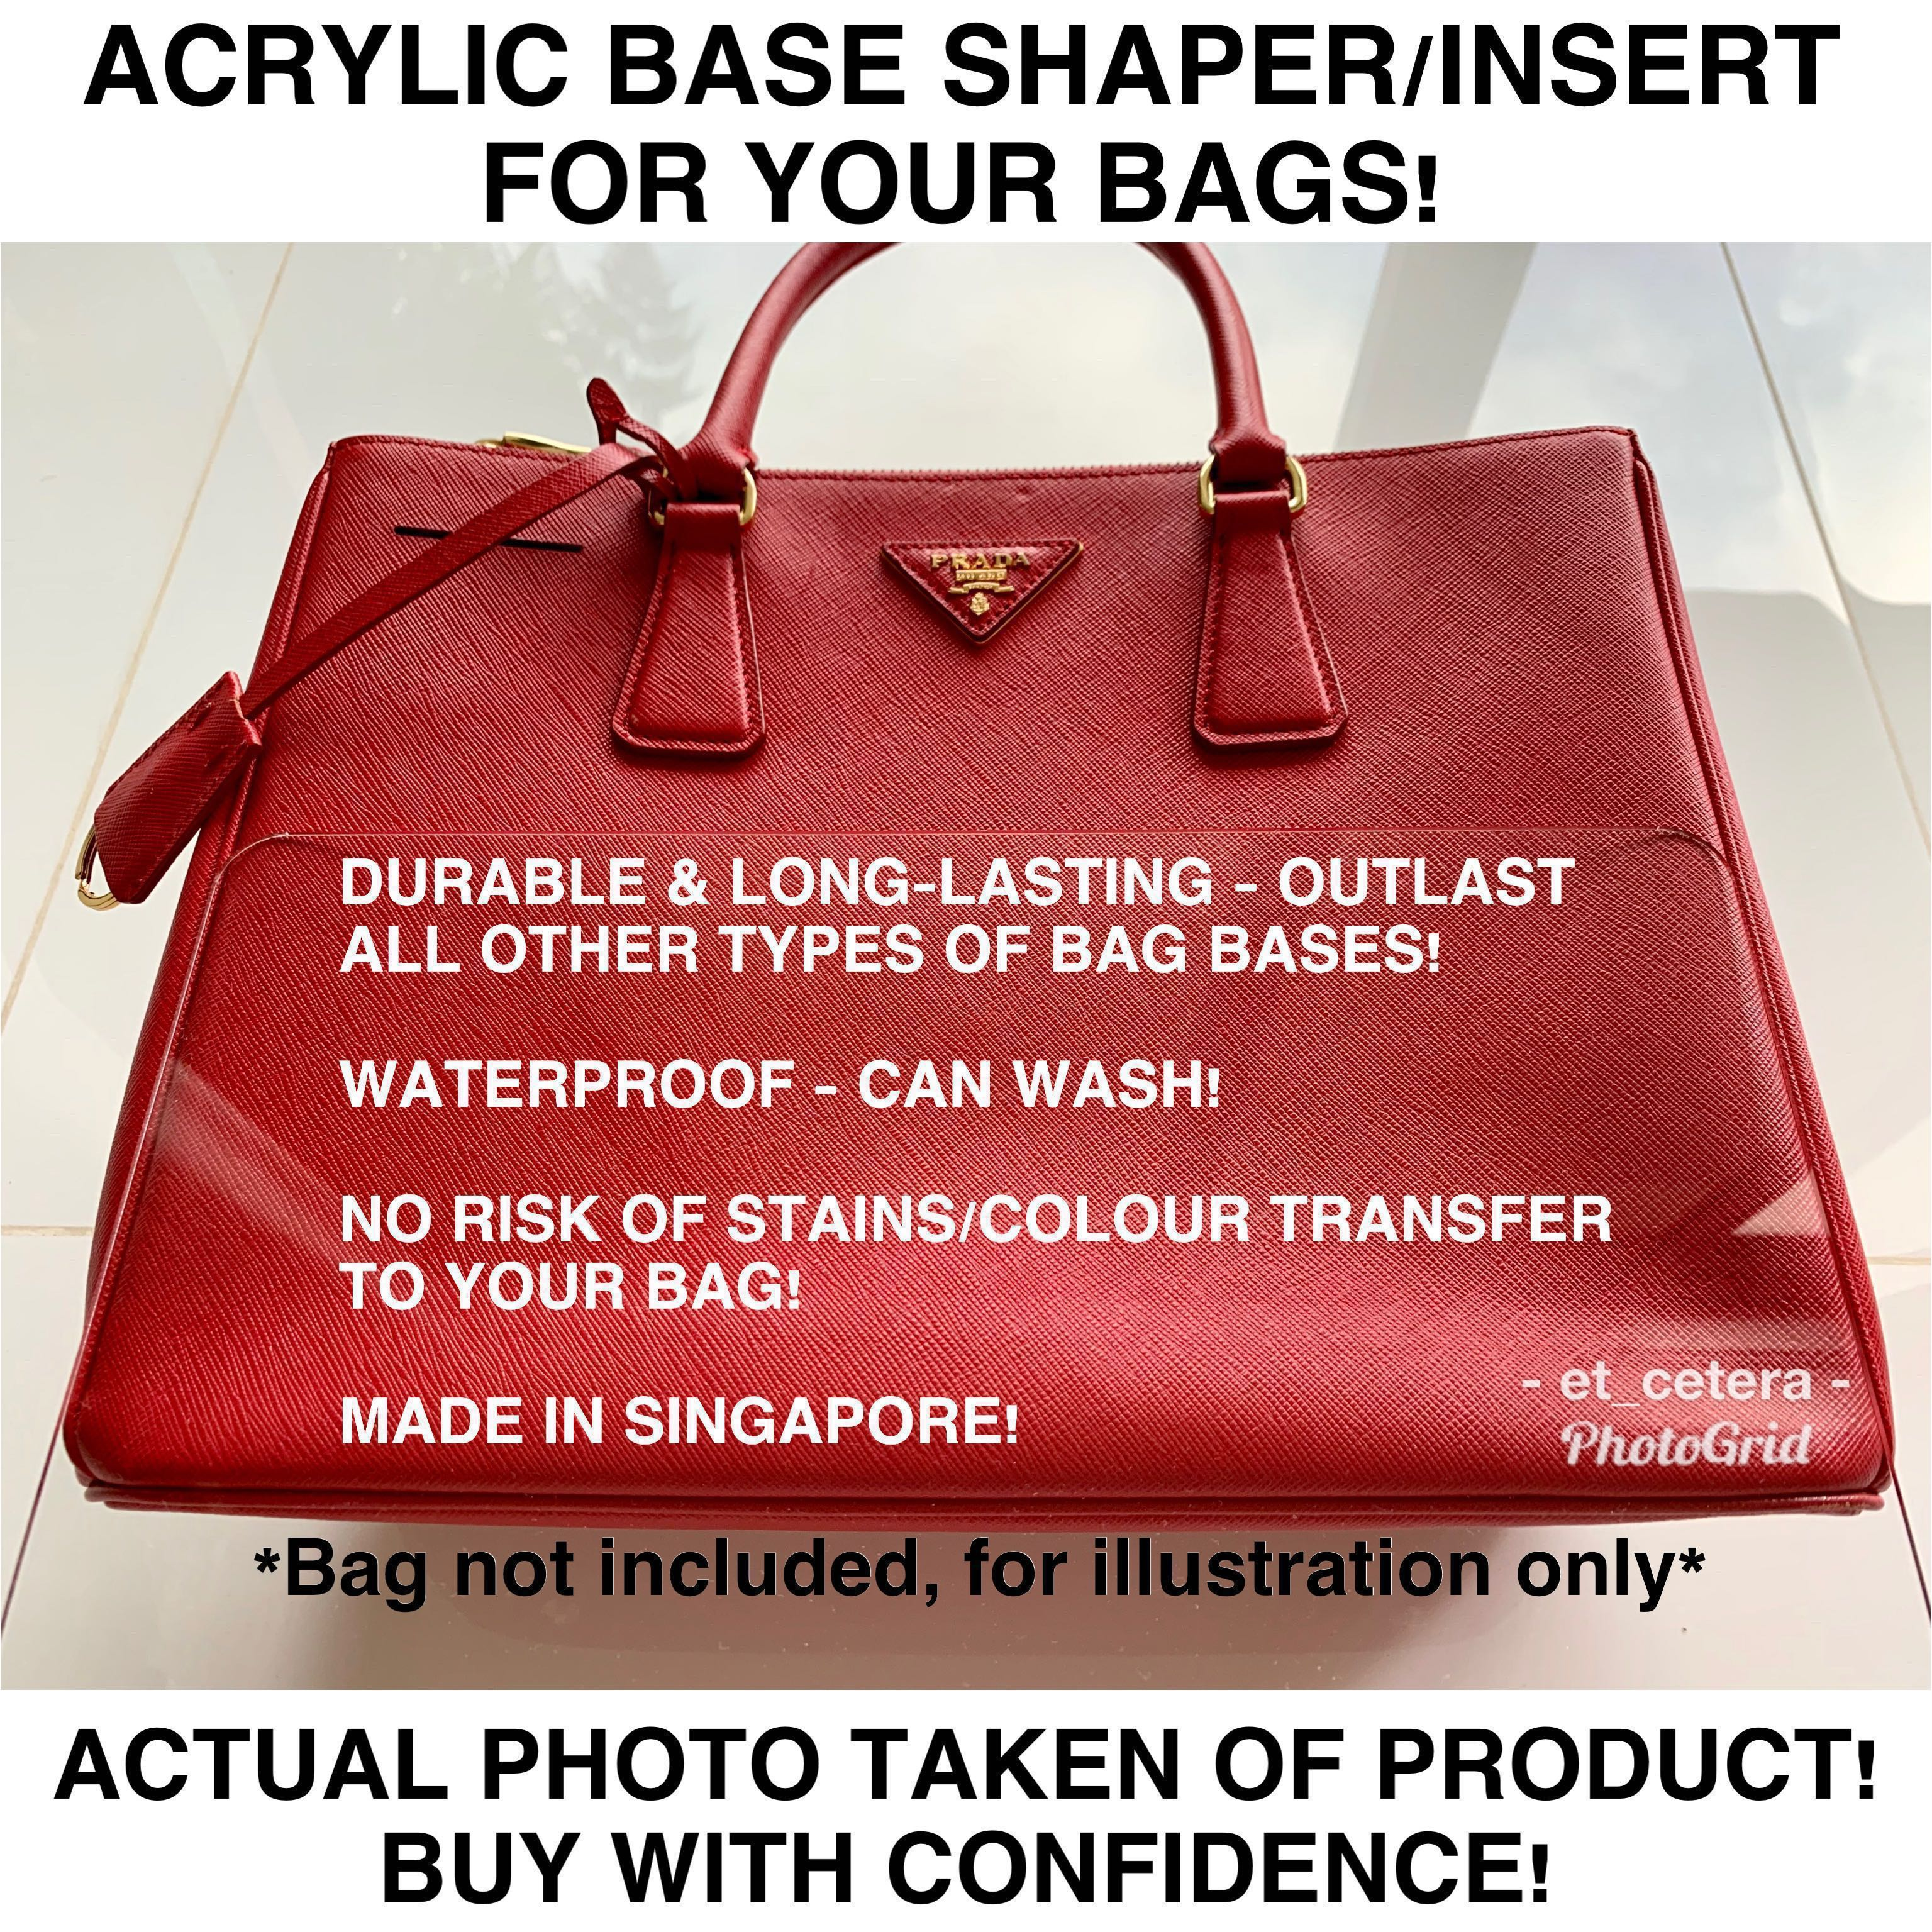 4d15bbee465 🌈VDAY SALE!😍 BN Acrylic Base Shaper Insert for Longchamp Le Pliage and  other Luxury Bags!  MakeSpaceForLove, Women s Fashion, Bags   Wallets, ...